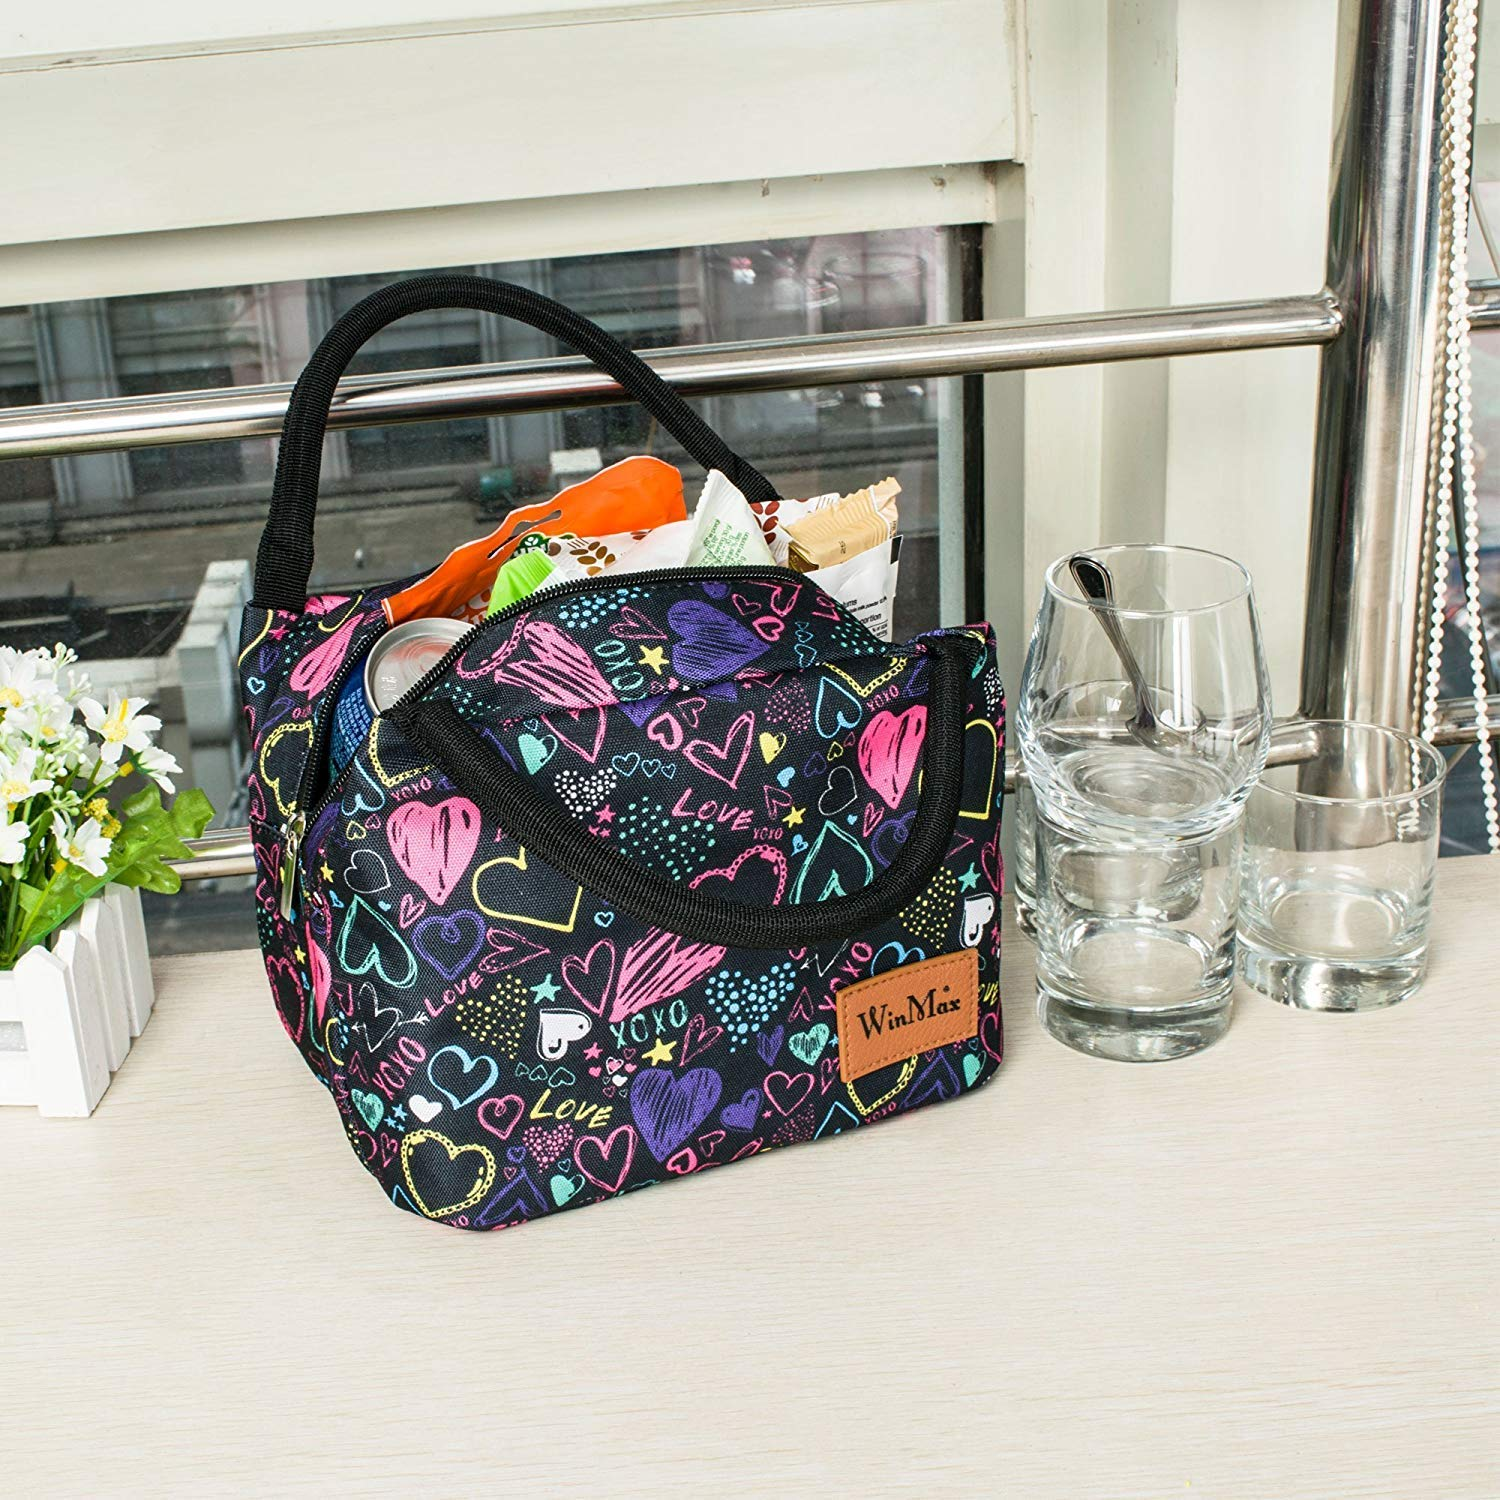 Shine boutique, lunch bag girly, sac repas isotherme